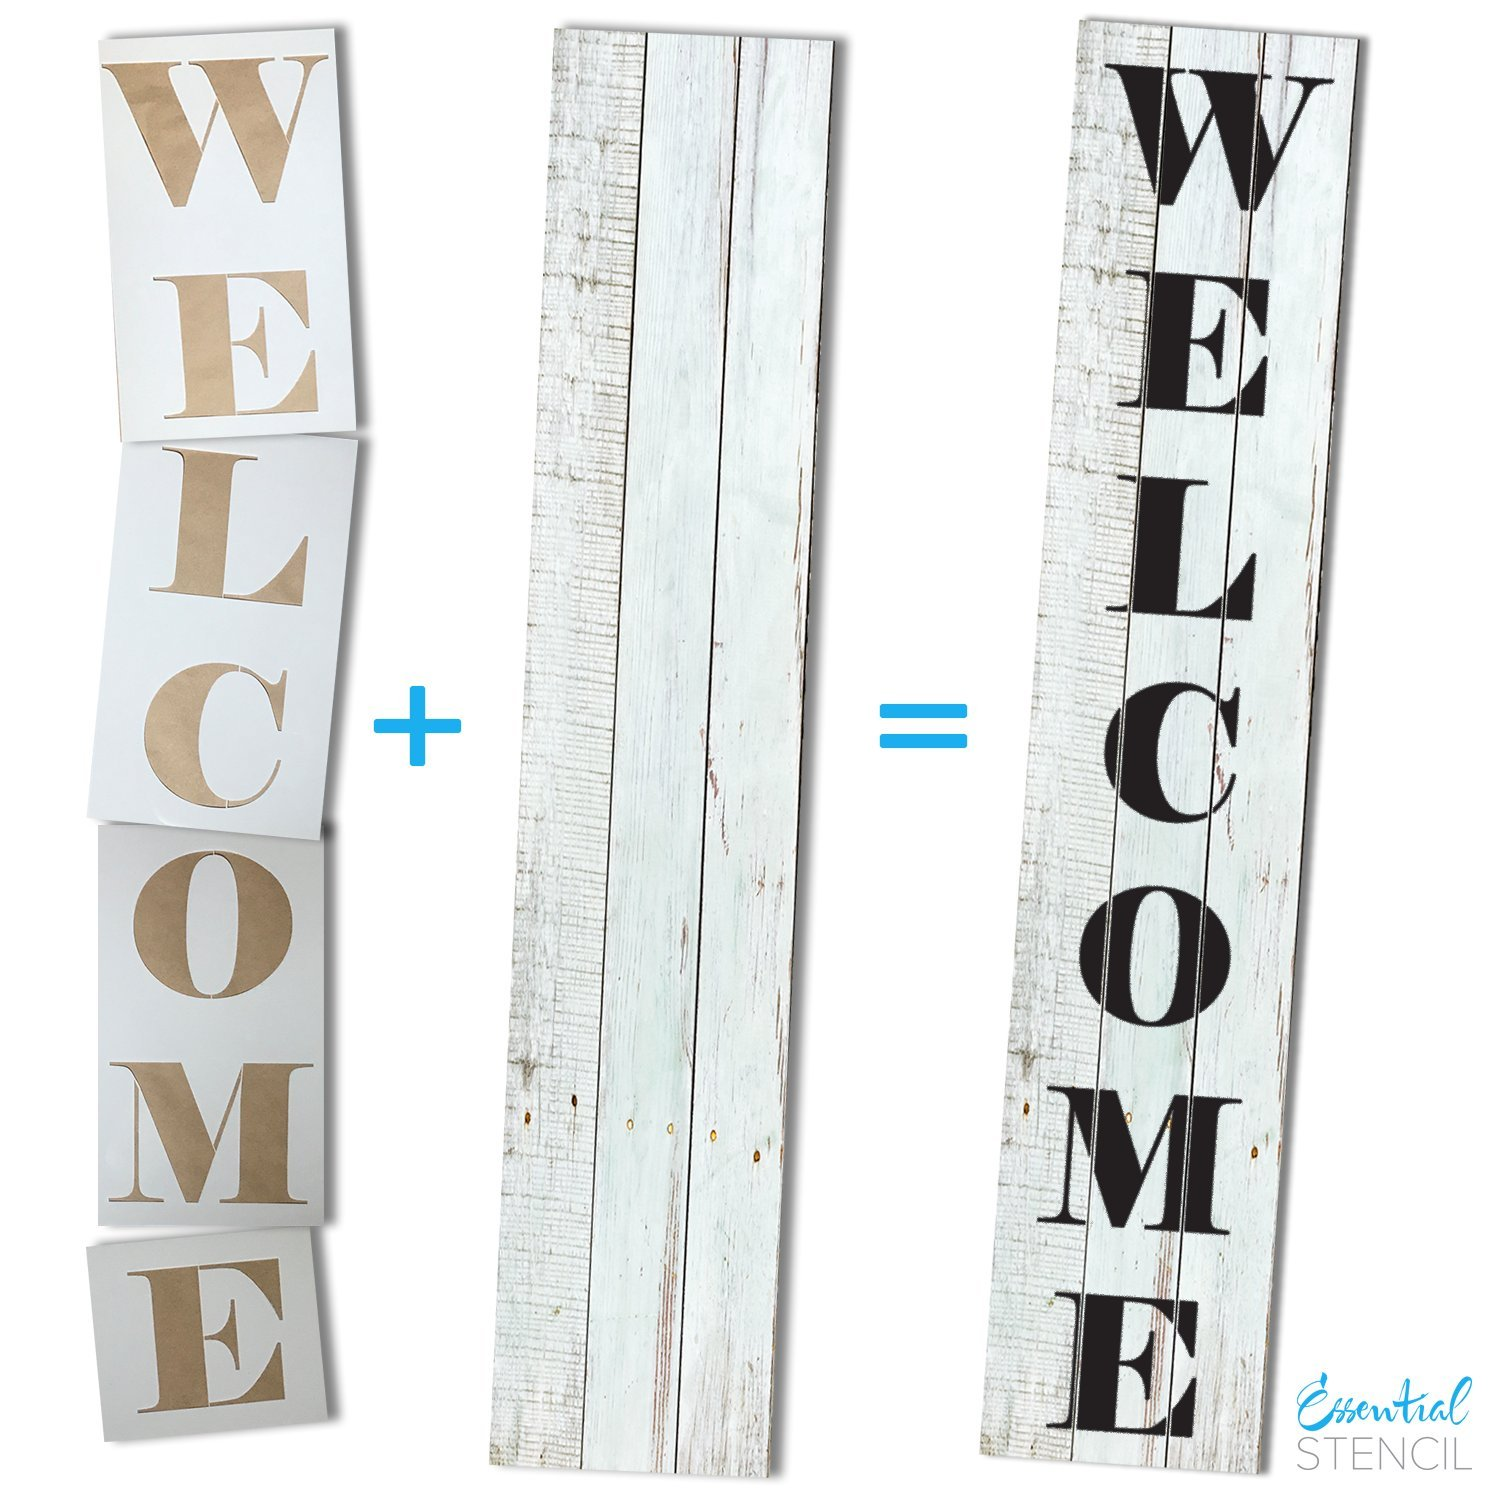 Essential Stencil Extra Large 52 inch WELCOME STENCIL for Painting on Wood | Ideal for 5ft Vertical Porch Sign (Rustic Farmhouse Entrance Sign) French Country Style